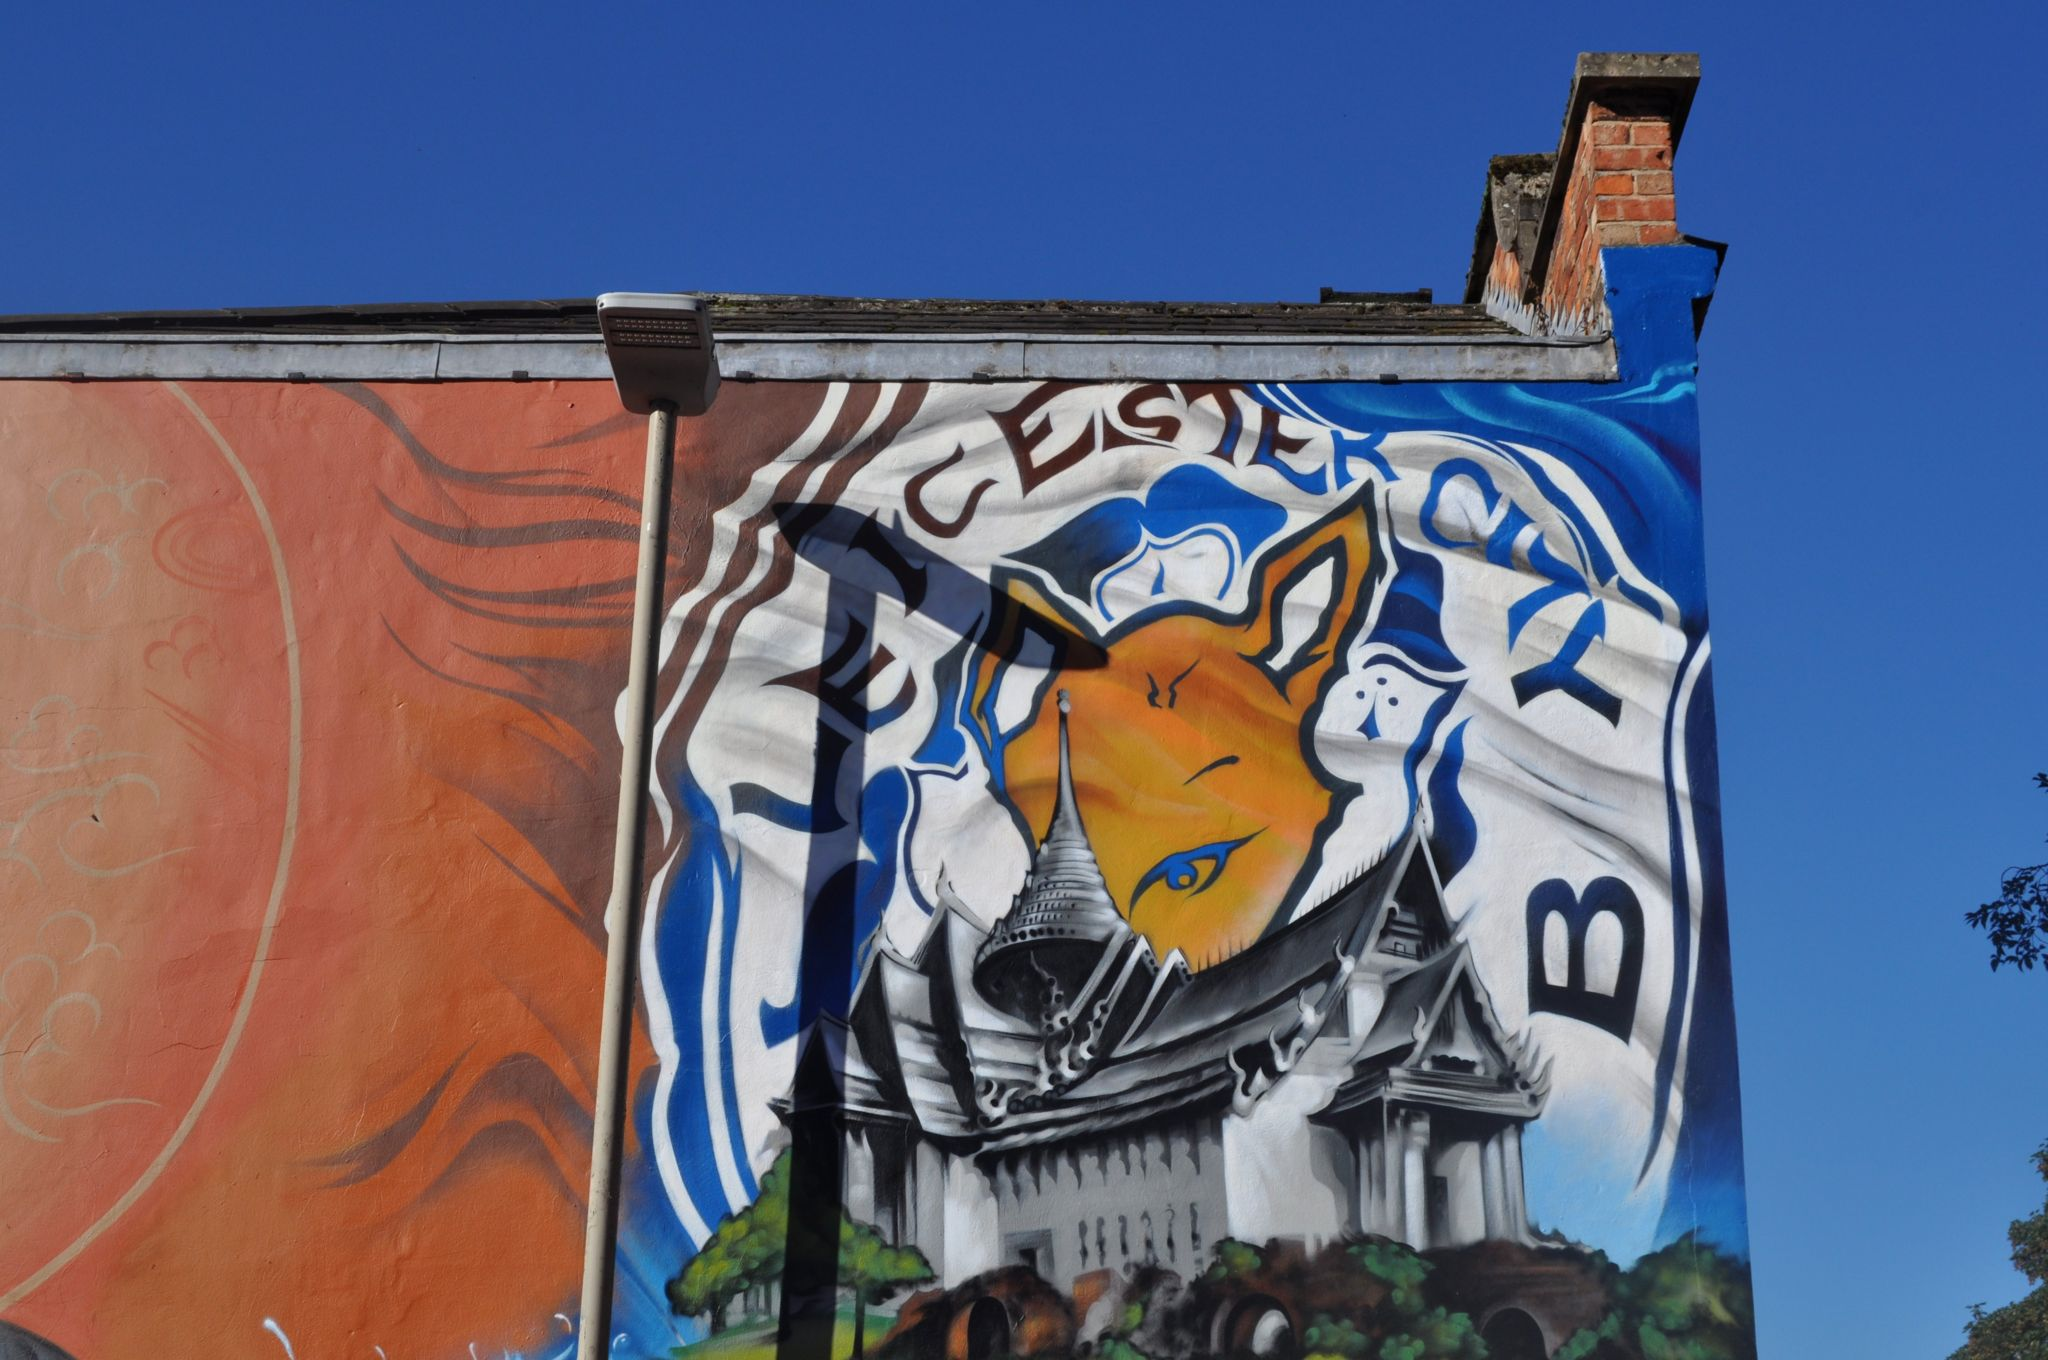 Leicester badge on a mural